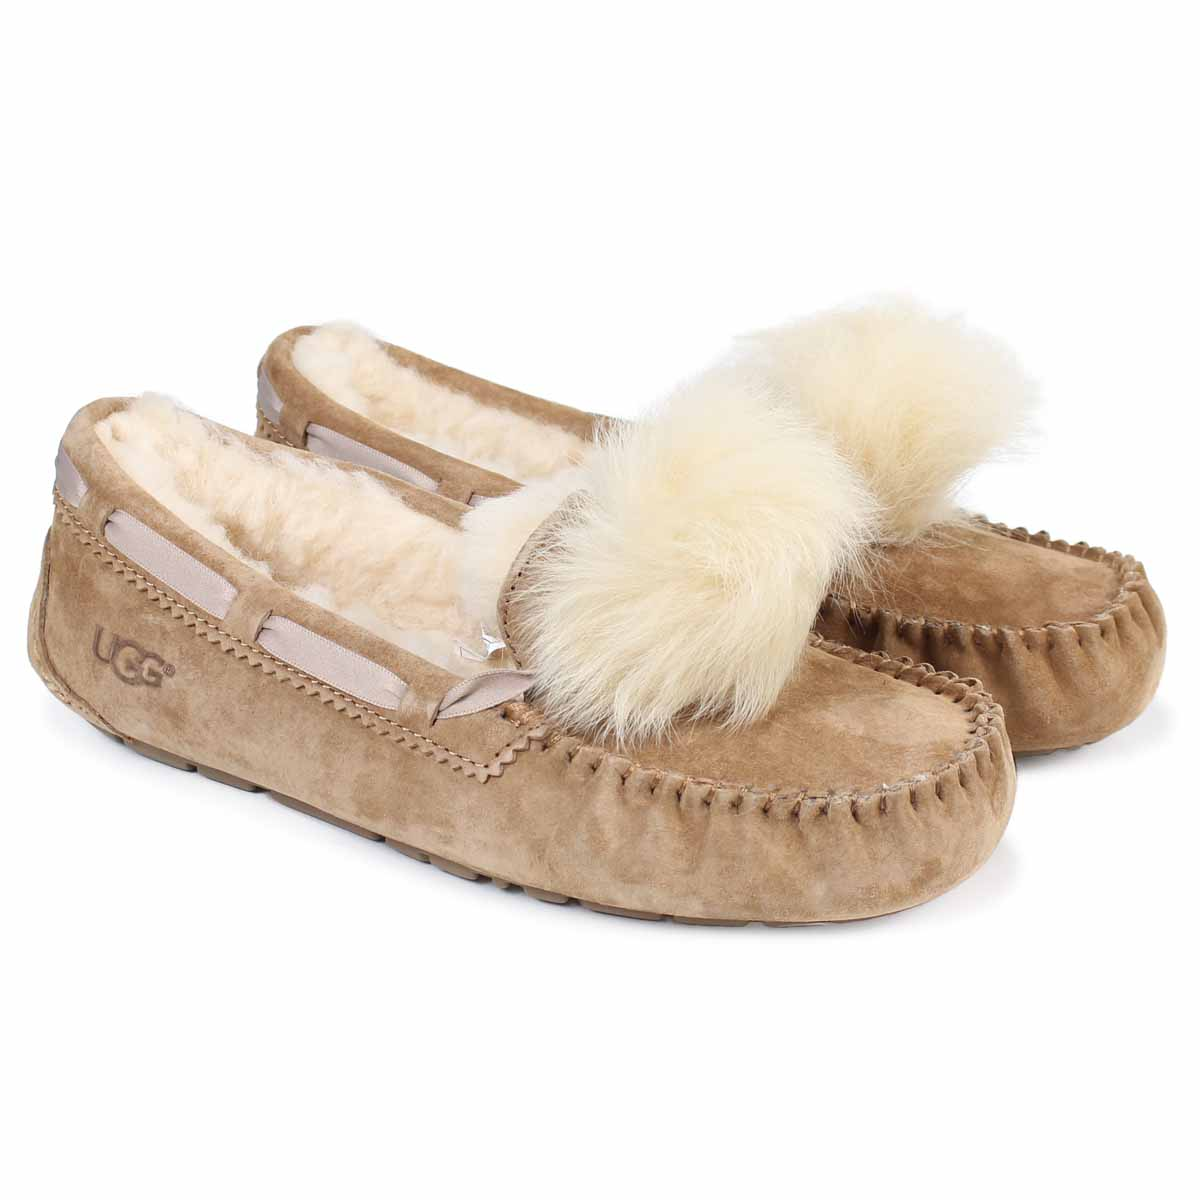 e914d83da82 UGG WOMENS DAKOTA POM POM アグモカシンダコタレディースムートンシューズ 1019015 sheepskin suede  [11/15 Shinnyu load] [1711]